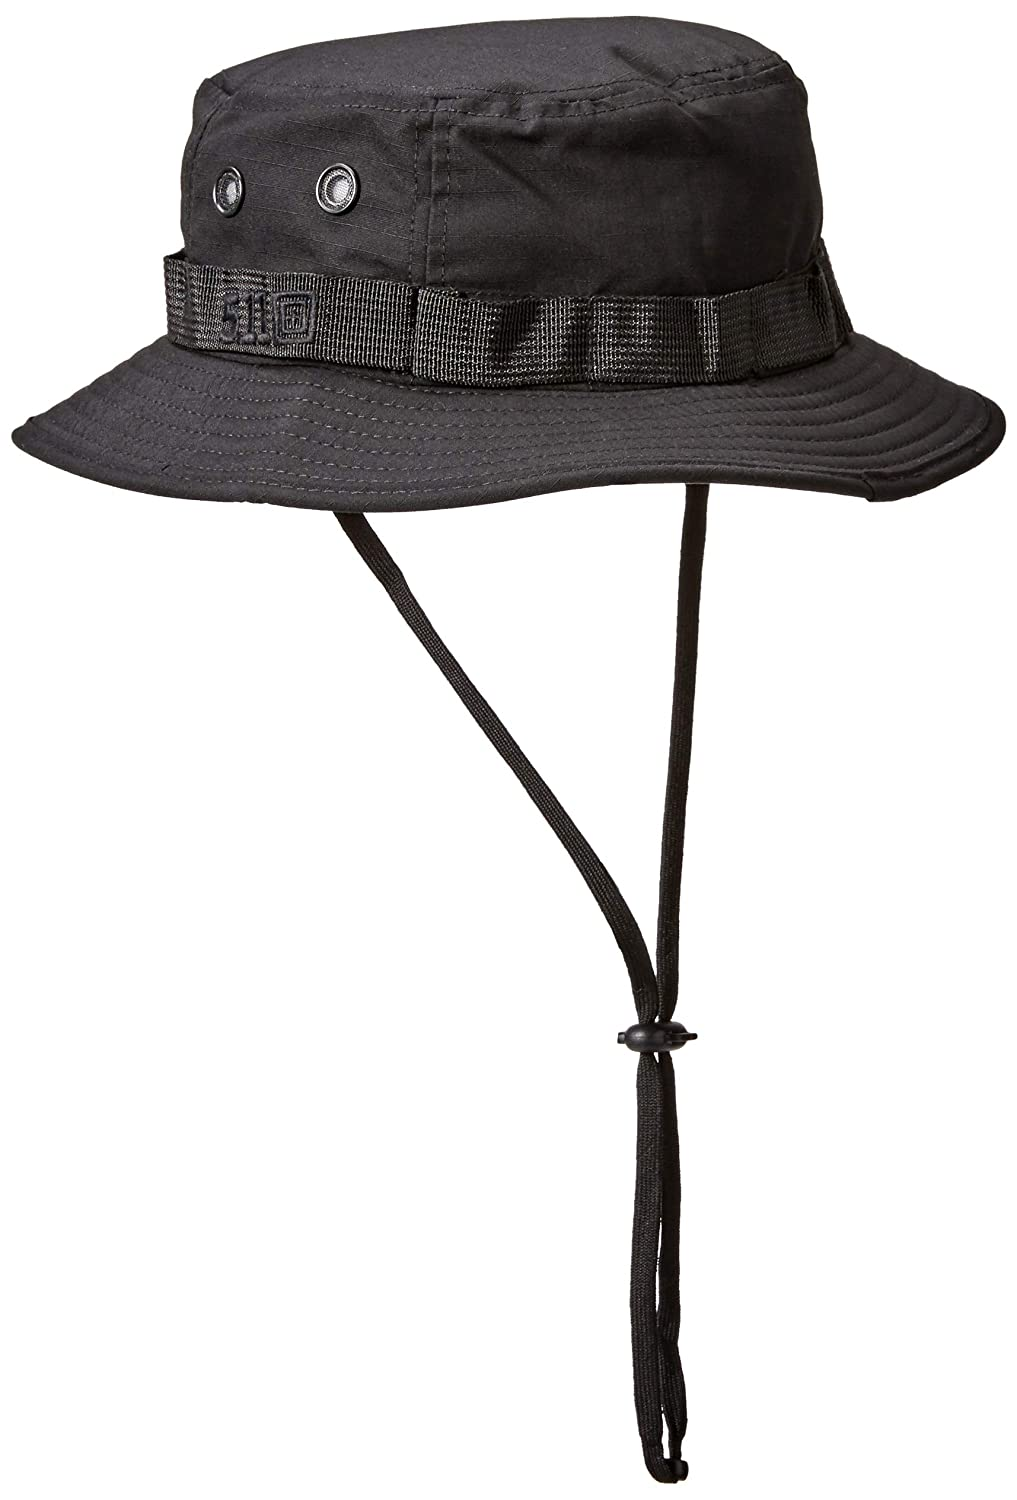 e15da762fefb6 5.11 Tactical Boonie Hat